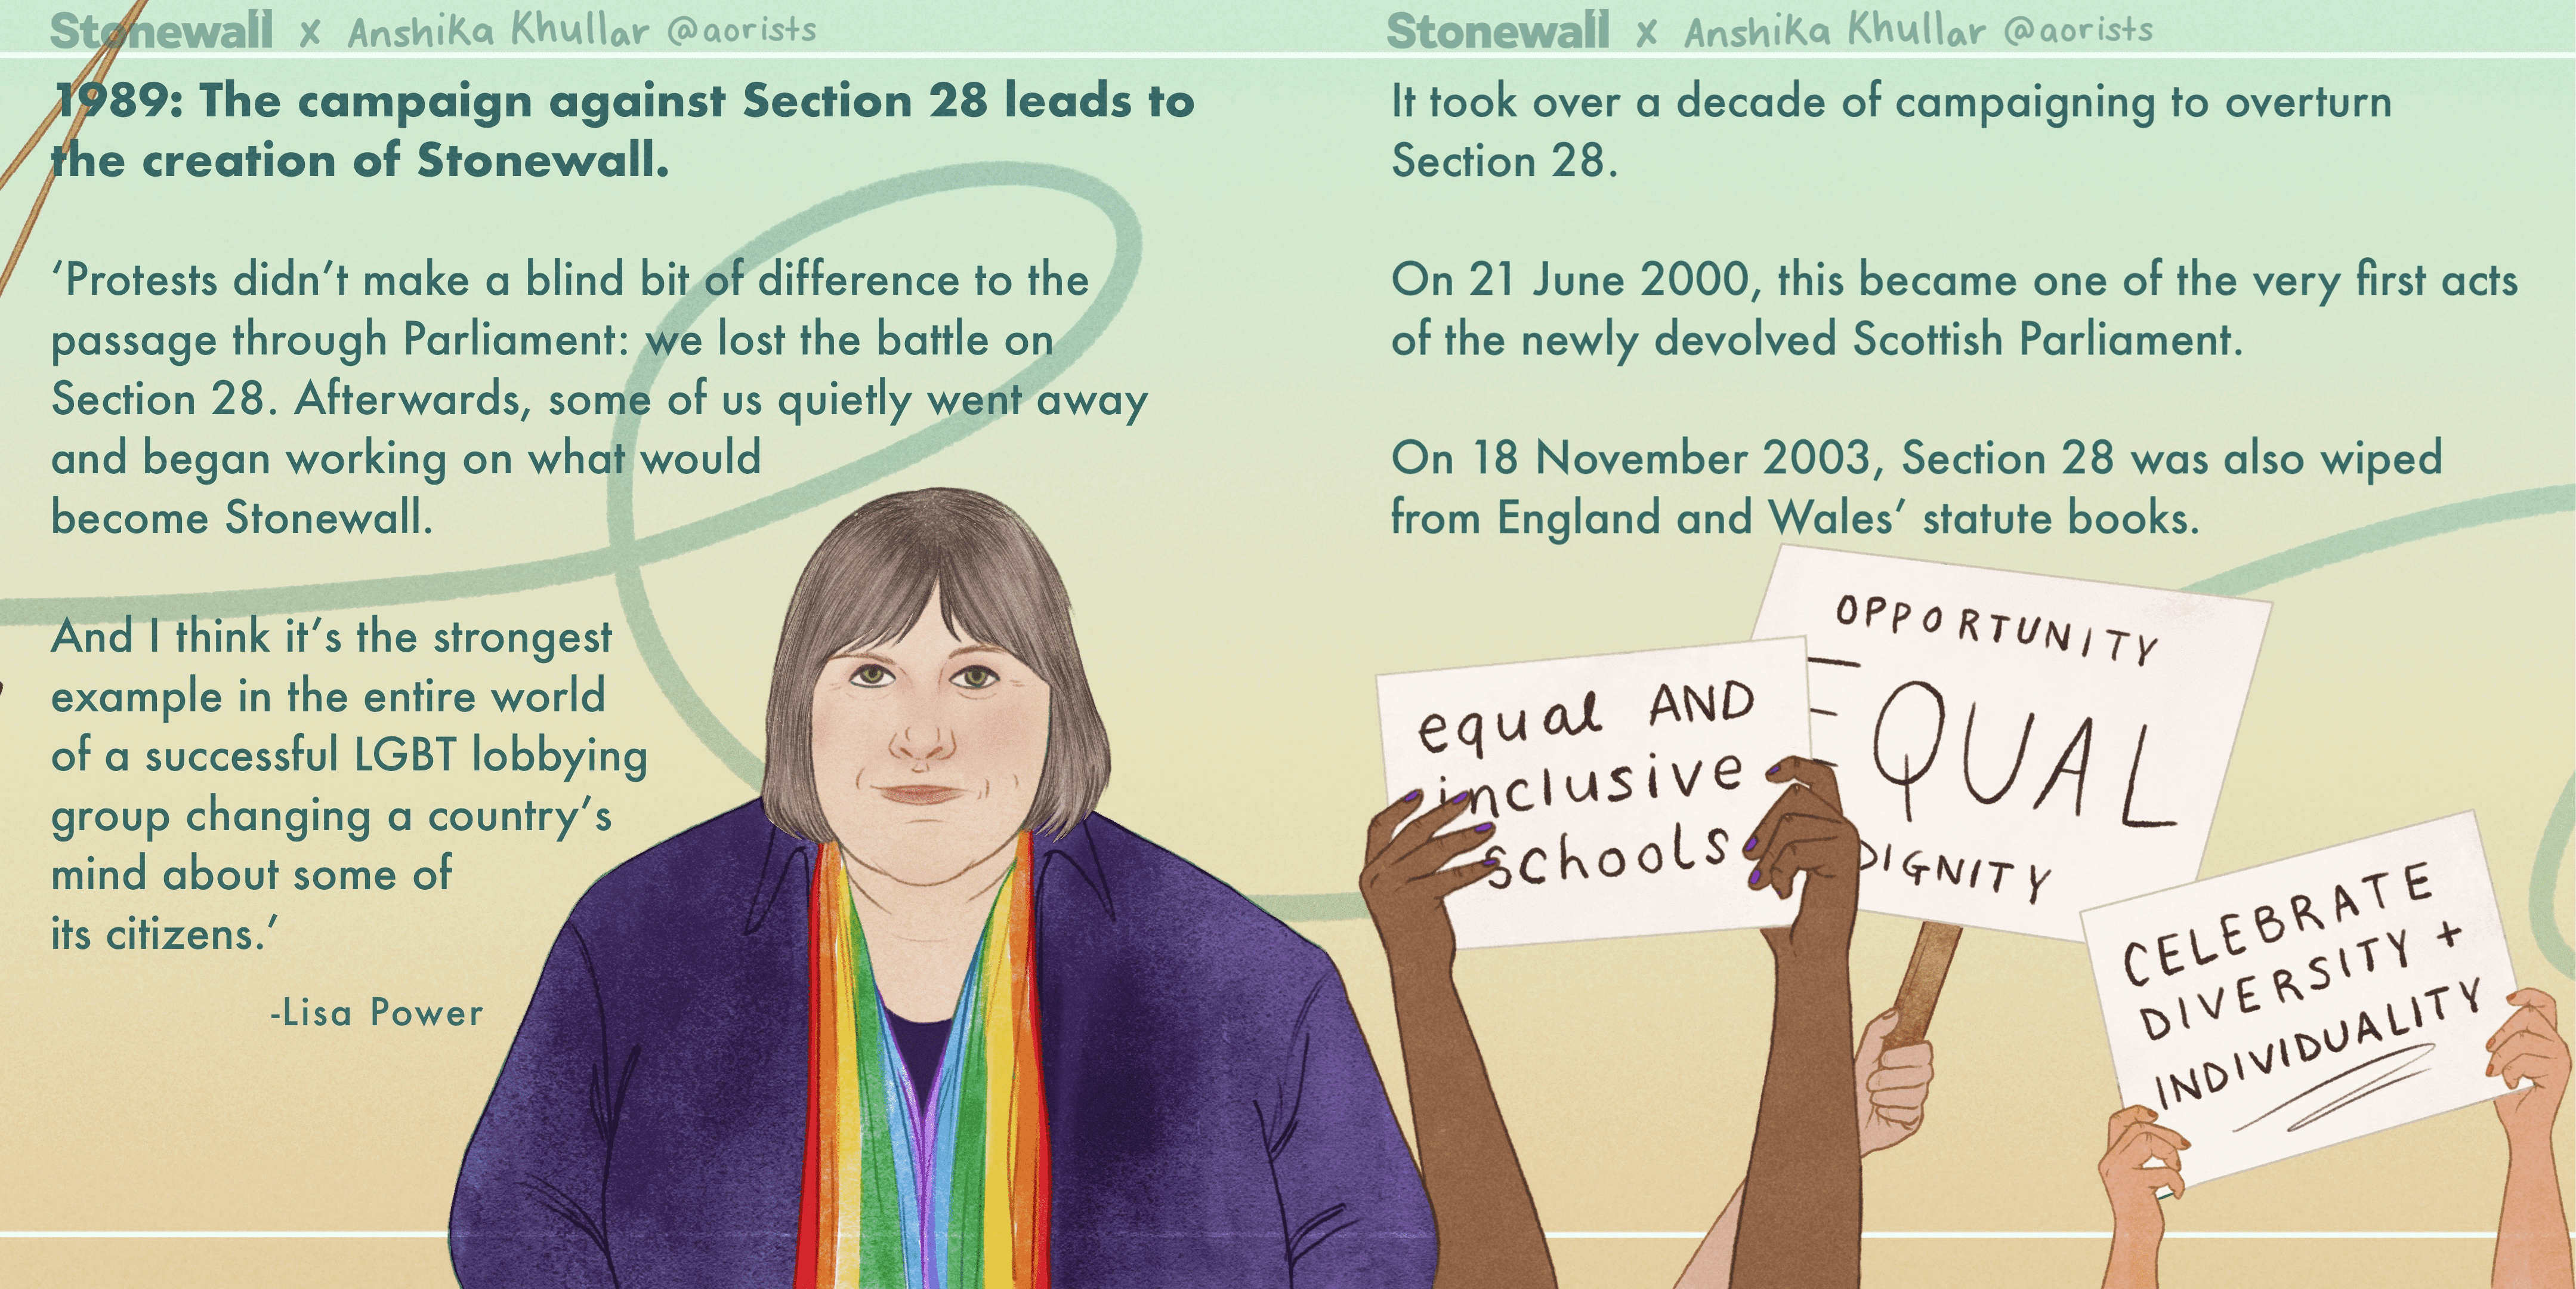 1989: The campaign against Section 28 leads to the creation of Stonewall. 'Protests didn't make a blind bit of difference to the passage through Parliament: we lost the battle on Section 28. Afterwards, some of us quietly went away and began working on what would become Stonewall. And I think it's the strongest example in the entire world of a successful LGBT lobbying group changing a country's mind about some of its citizens.' Illustration of: Lisa Power. It took over a decade of campaigning to overturn Section 28. On 21 June 2000, this became one of the very first acts of the newly devolved Scottish Parliament. On 18 November 2003, Section 28 was also wiped from England and Wales' statute books. Illustration of: a row of people holding up placards with inclusive education messaging on them as if at a protest.